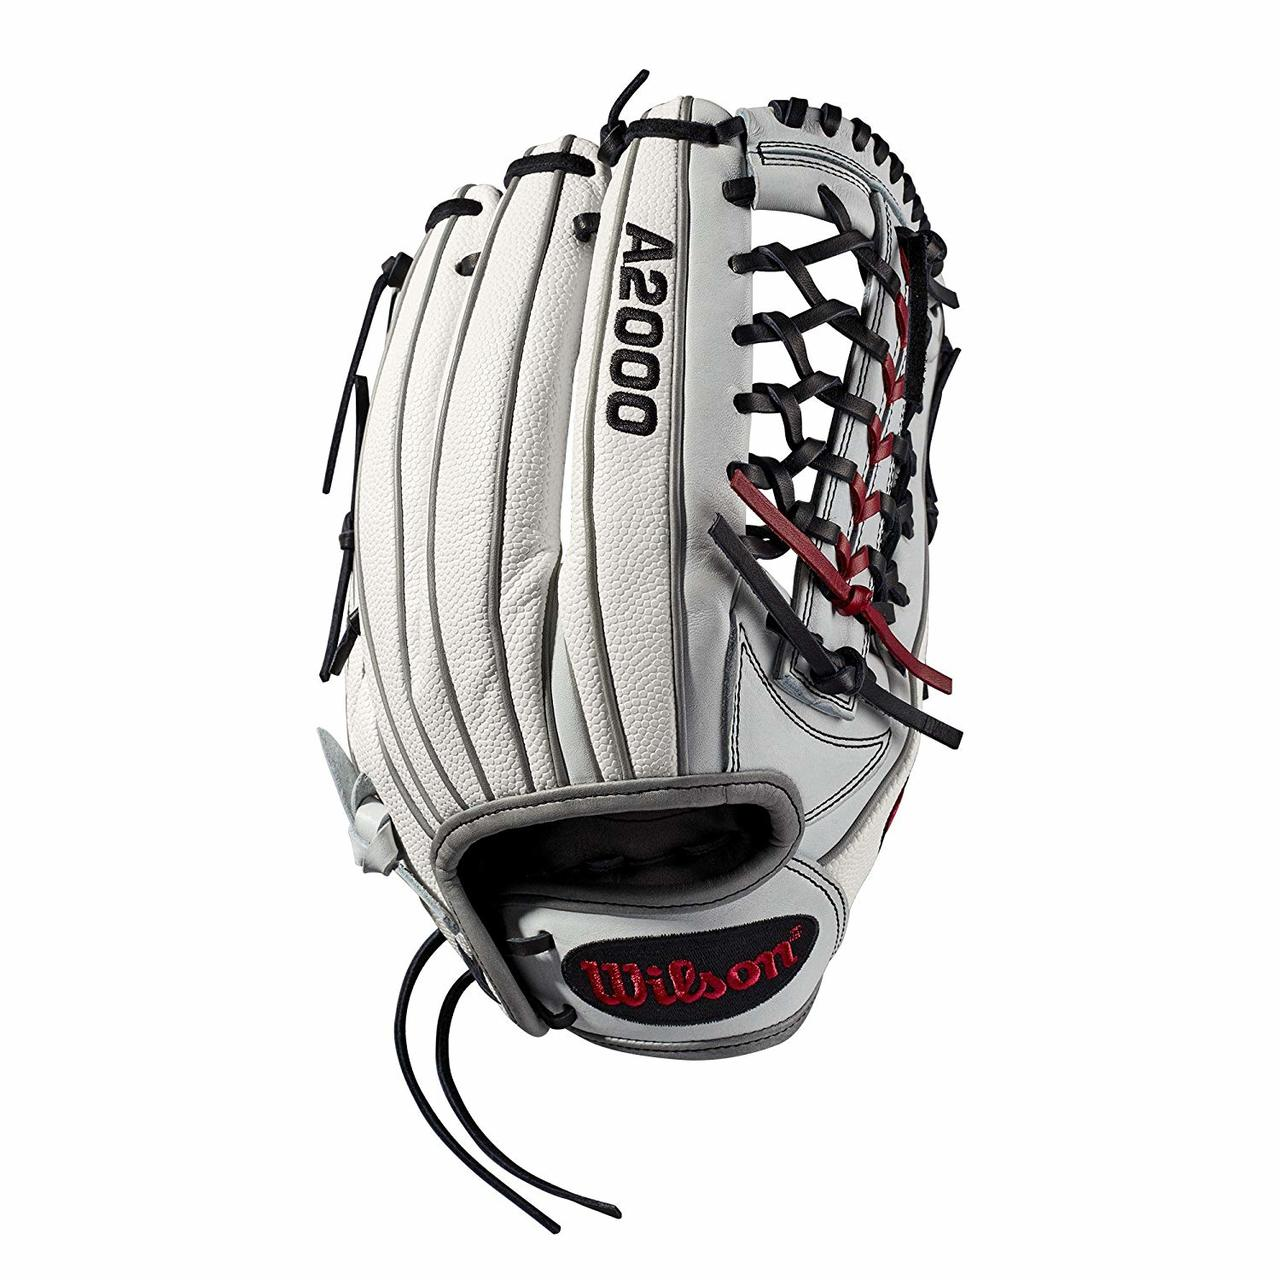 wilson-2019-a2000-fasptich-softball-glove-12-5-right-hand-throw WTA20RF19T125SS-RightHandThrow Wilson 887768702168 Outfield model; fast pitch-specific model; Pro-Laced T-Web New Drawstring closure for